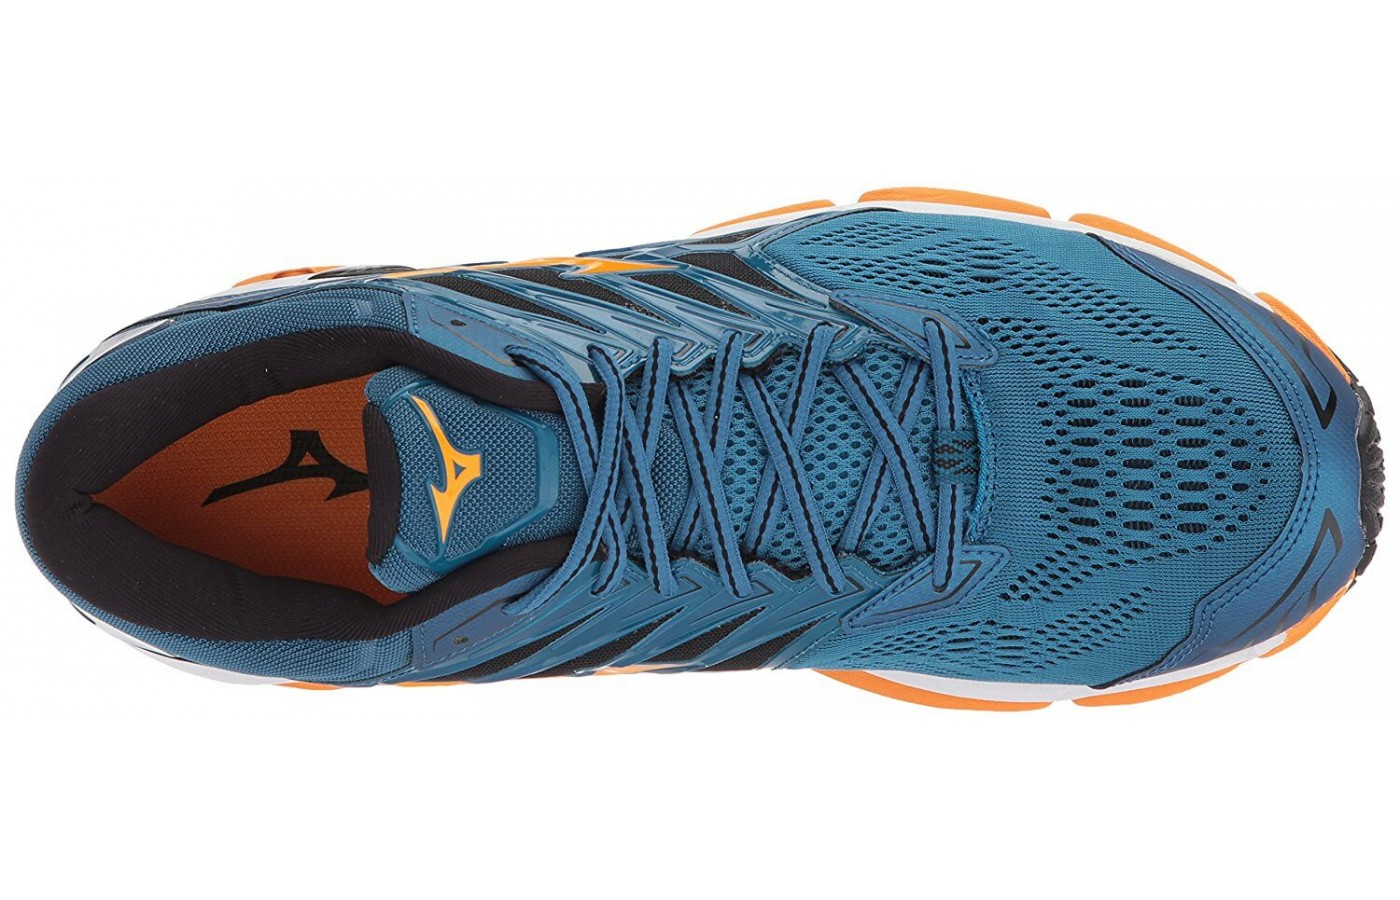 cac16d636a83 Mizuno Wave Horizon 2 Review - Buy or Not in June 2019?